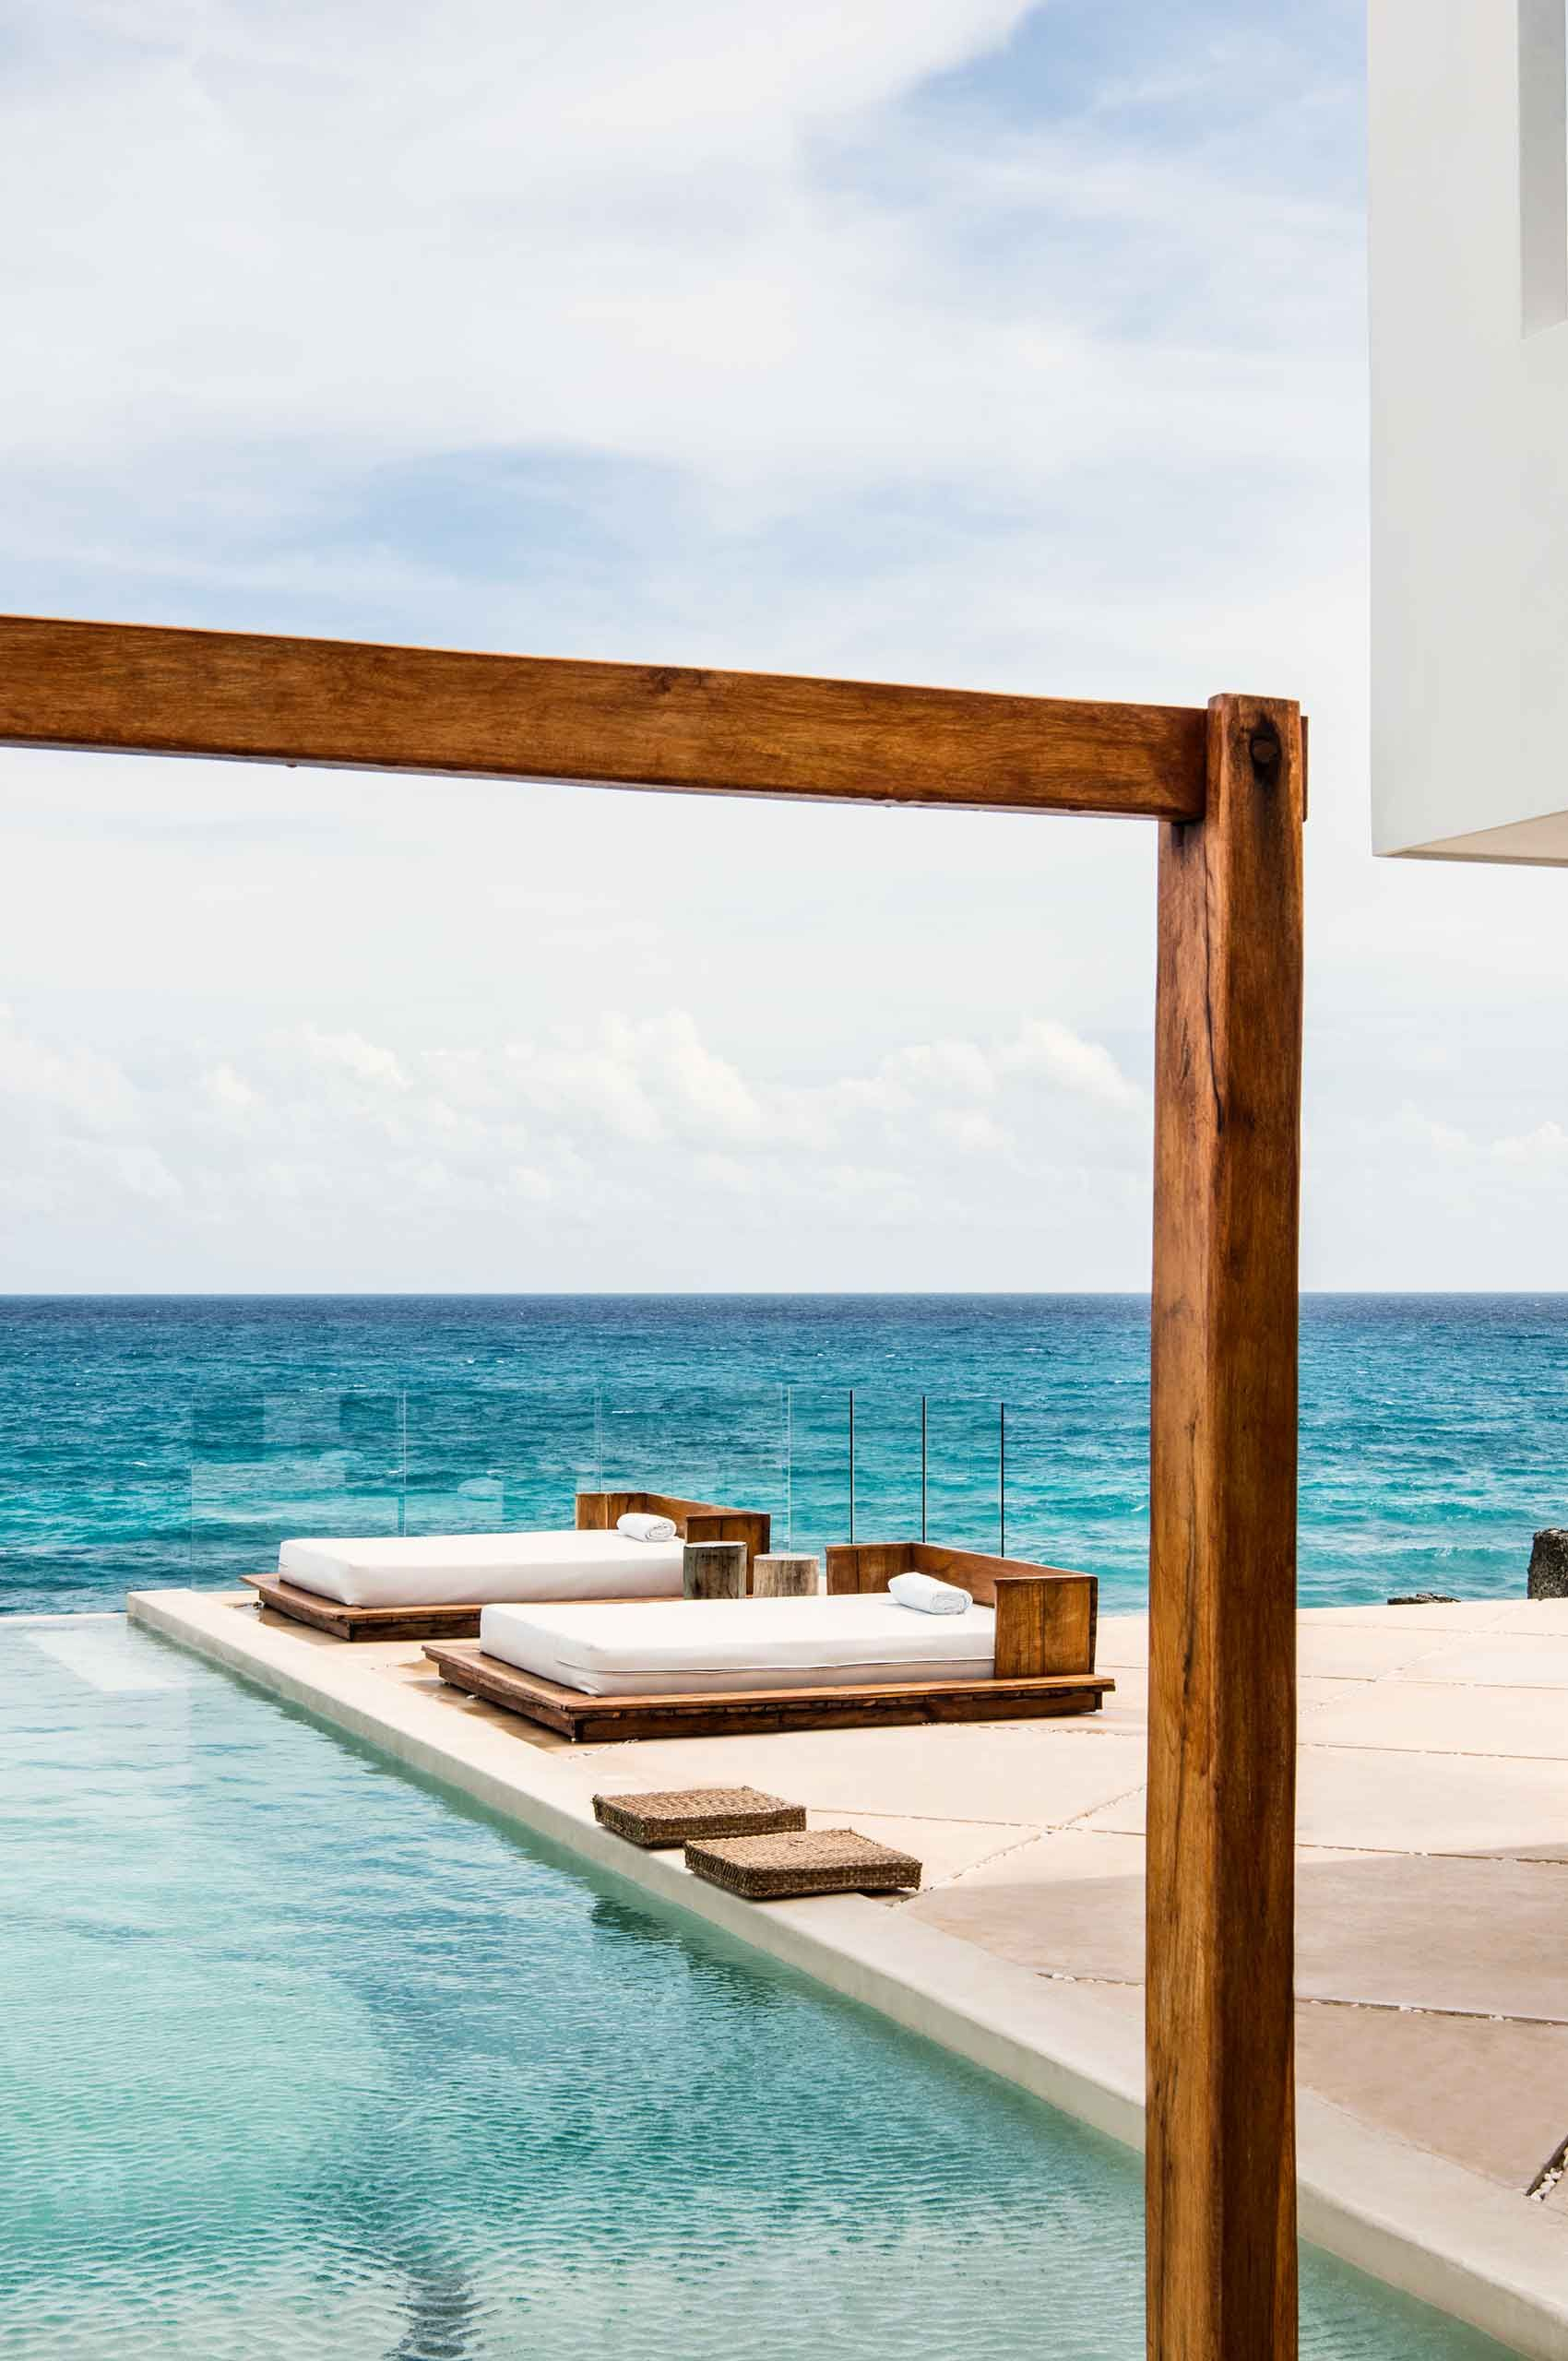 Loungebeds-by-pool-at-ocean-by-HenrikOlundPhotography.jpg